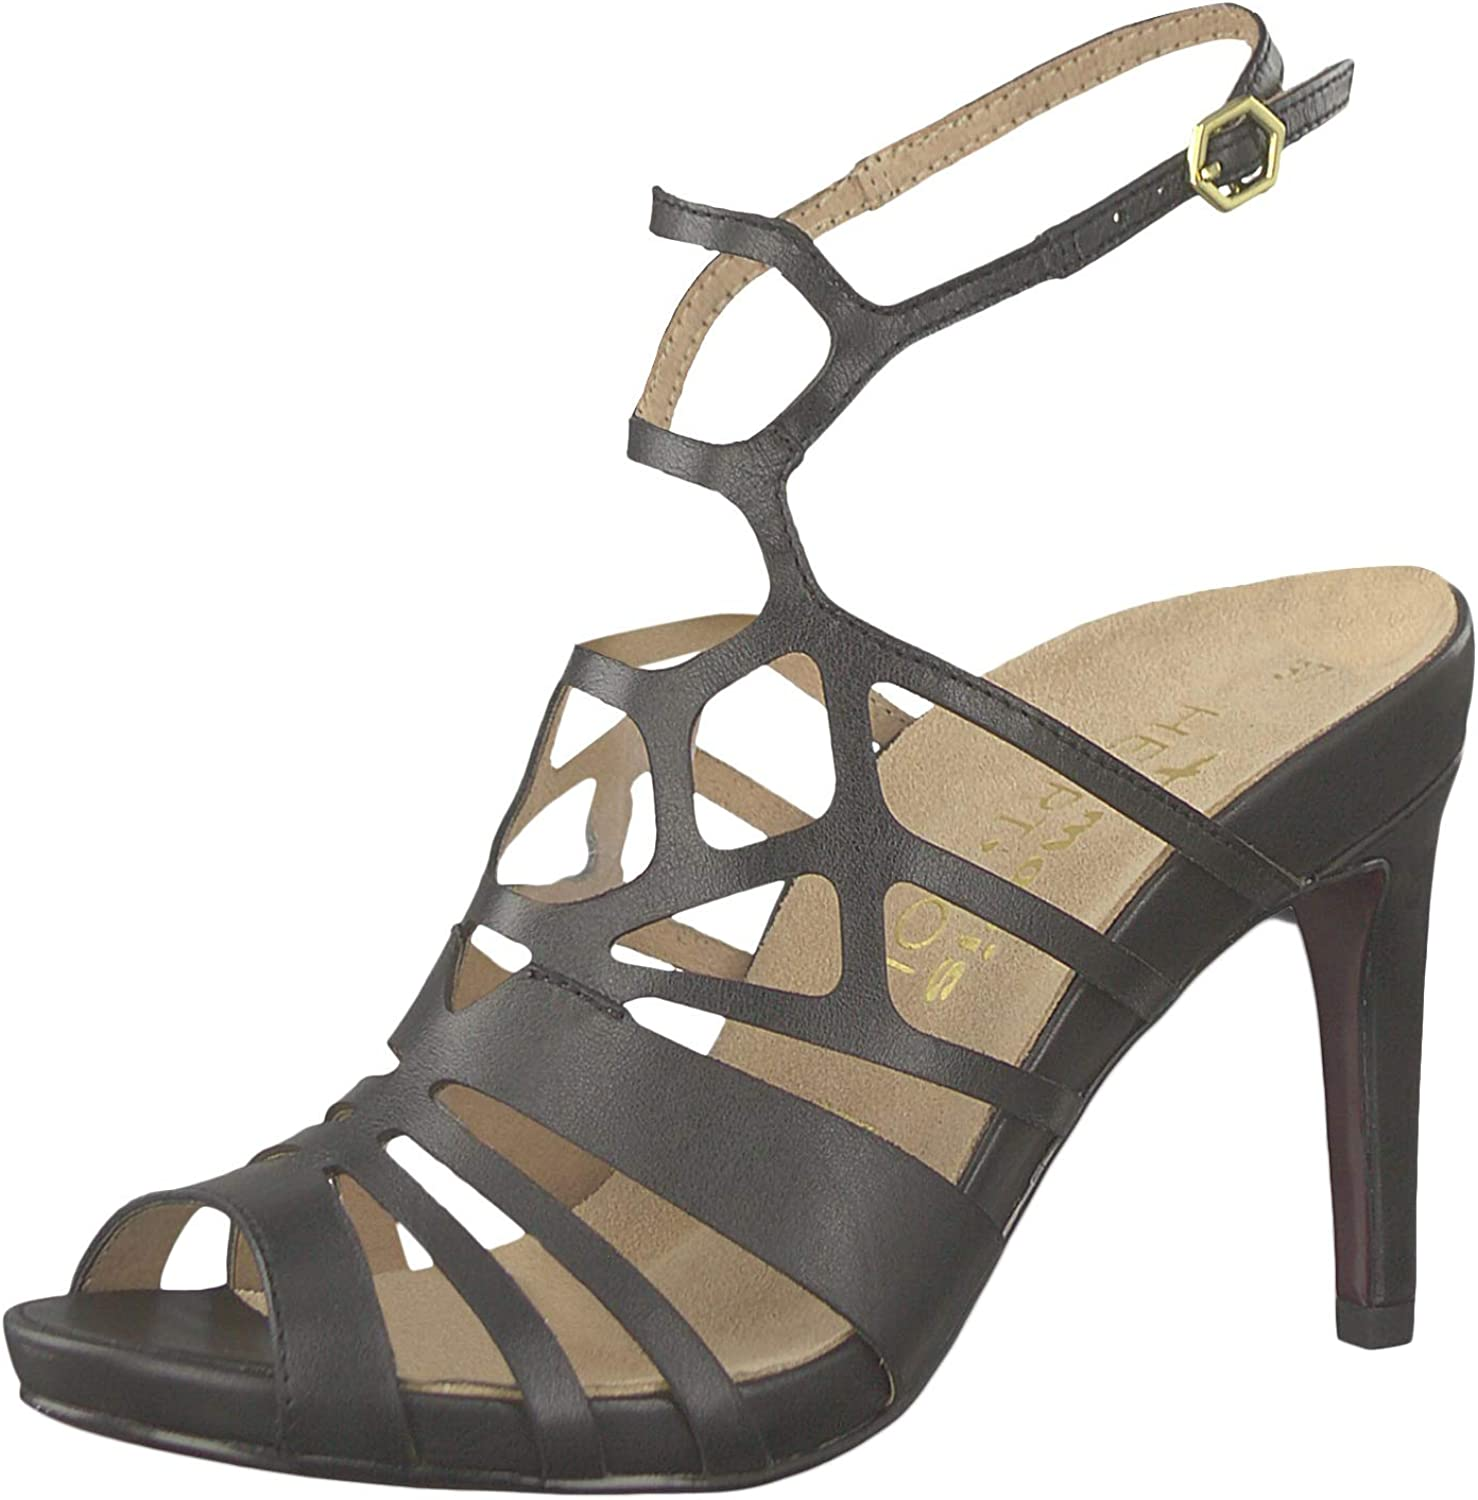 Tamaris 1-28317-22 003 Damen schwarz Leather Schwarz Sandaletten High Heeled Strappy Sandale Heart & Sole